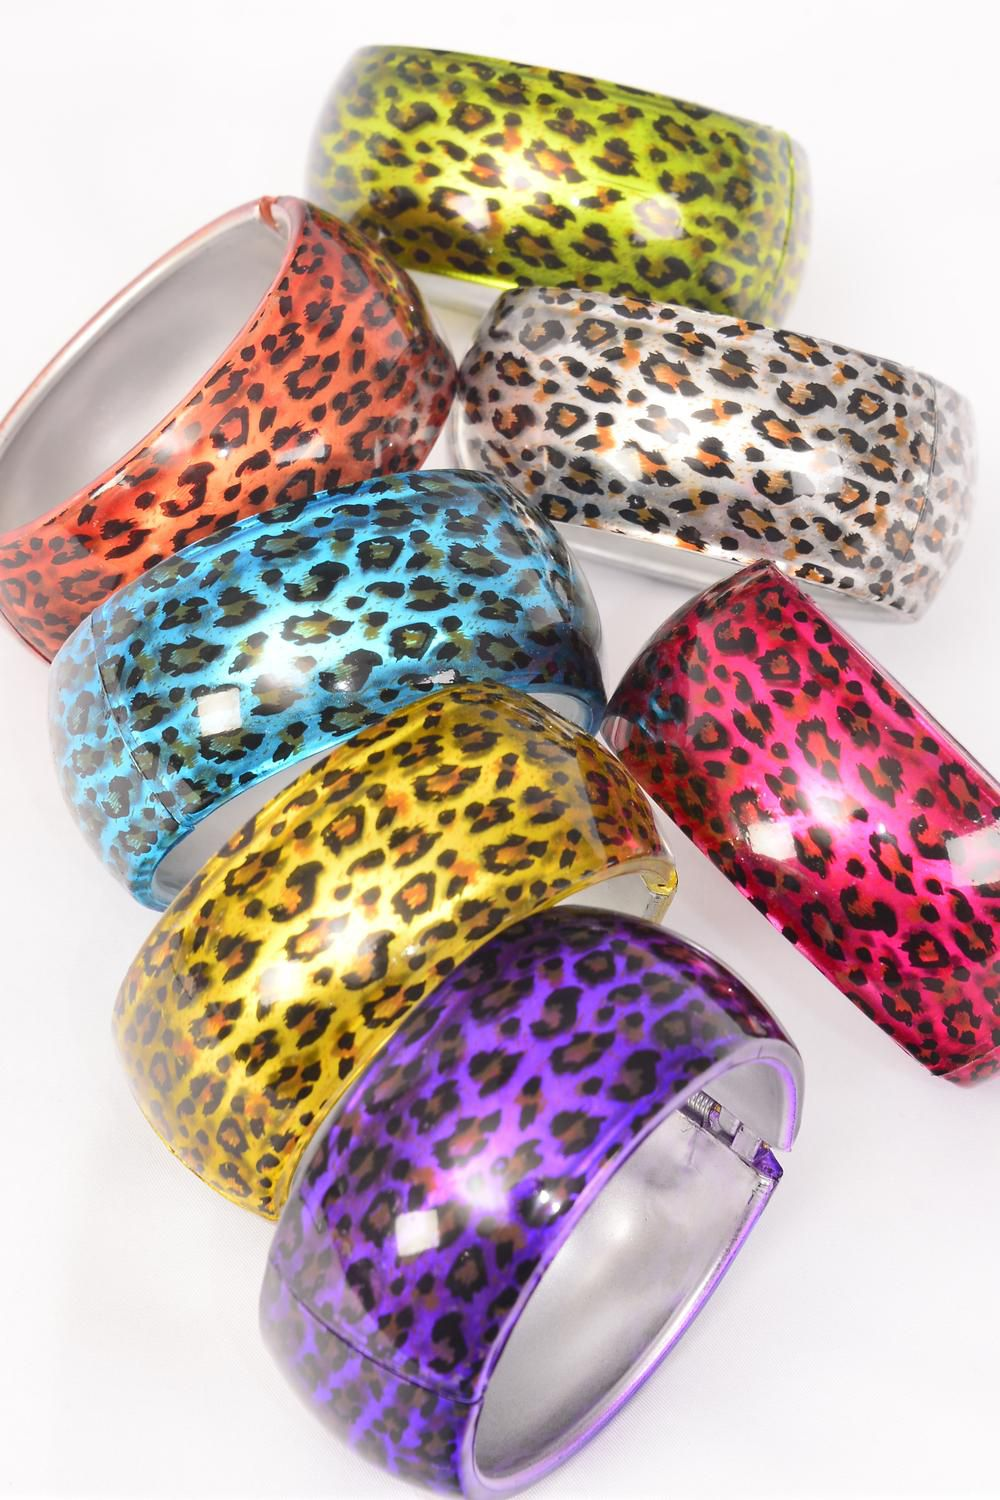 "Bangle Acrylic Hinge Cat-eye Leopard Print/DZ **Hinge** Size-2.75"" x 1.5"" Dia Wide,2 Silver,2 Blue,2 Purple,2 Red,2 Yellow,1 Lime.1 Orange,7 Color Asst,Hang Tag & OPP Bag & UPC -"